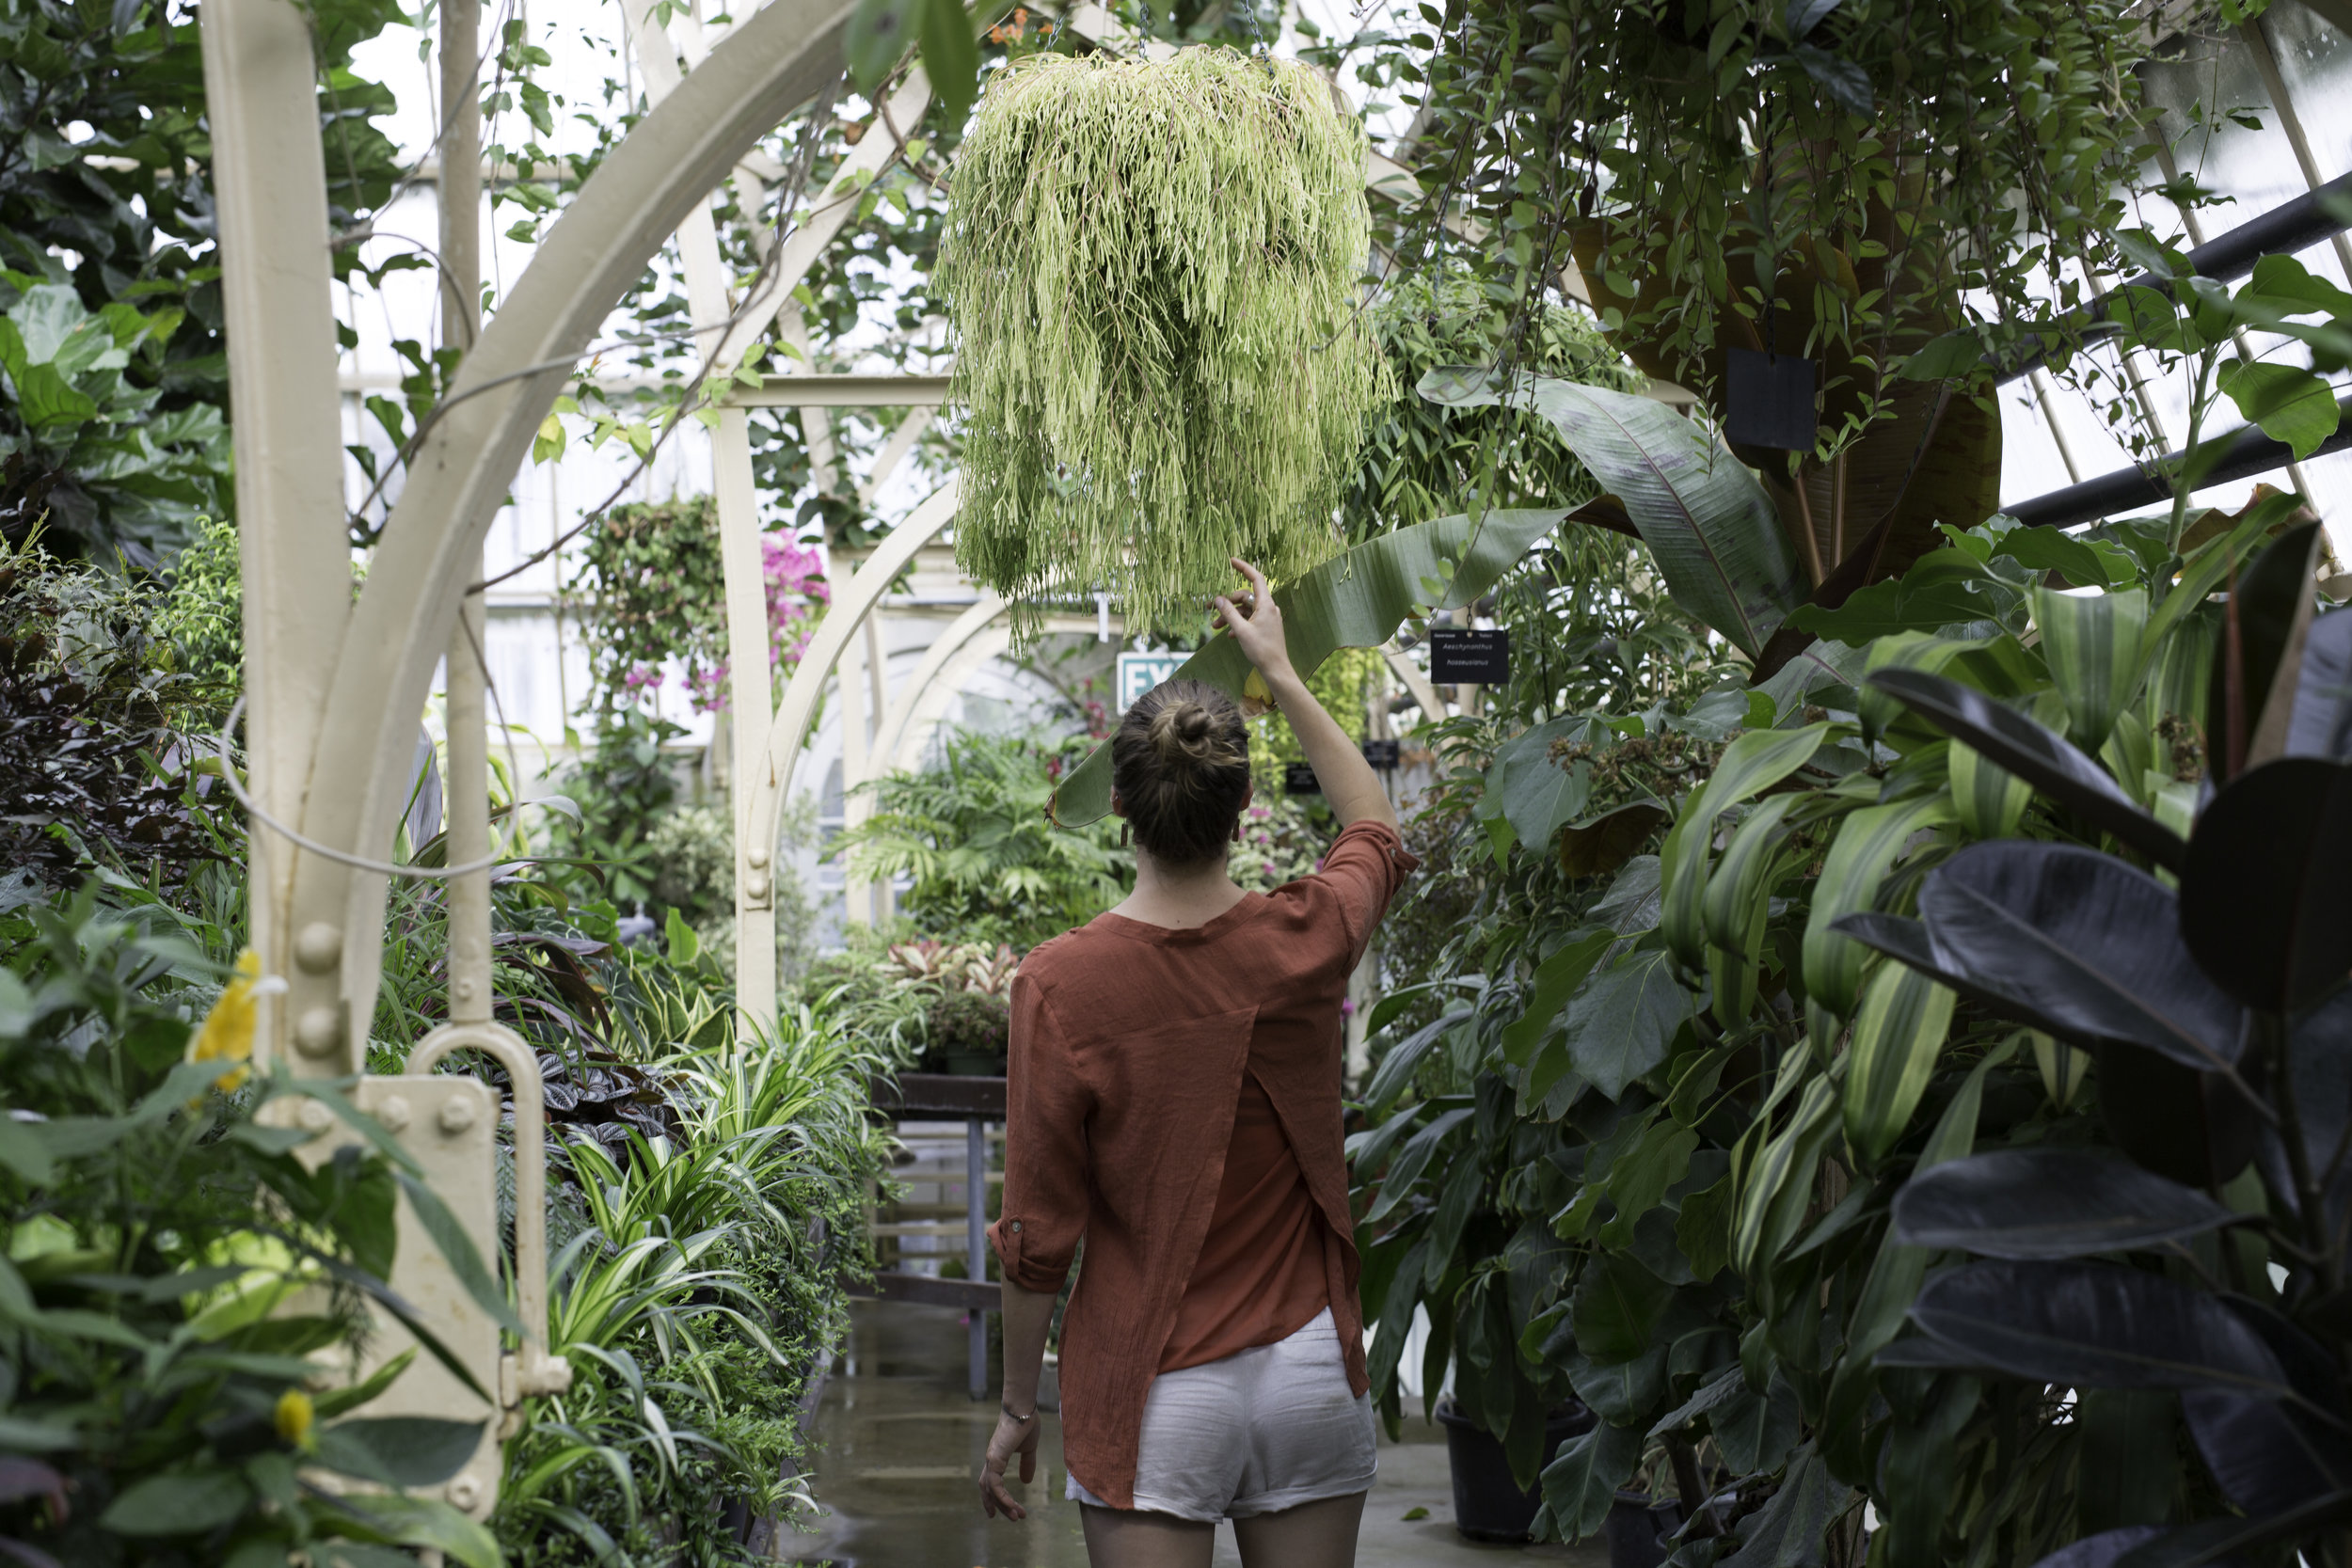 The botanical gardens in Christchurch were any greenhouse loving kids dream come true.